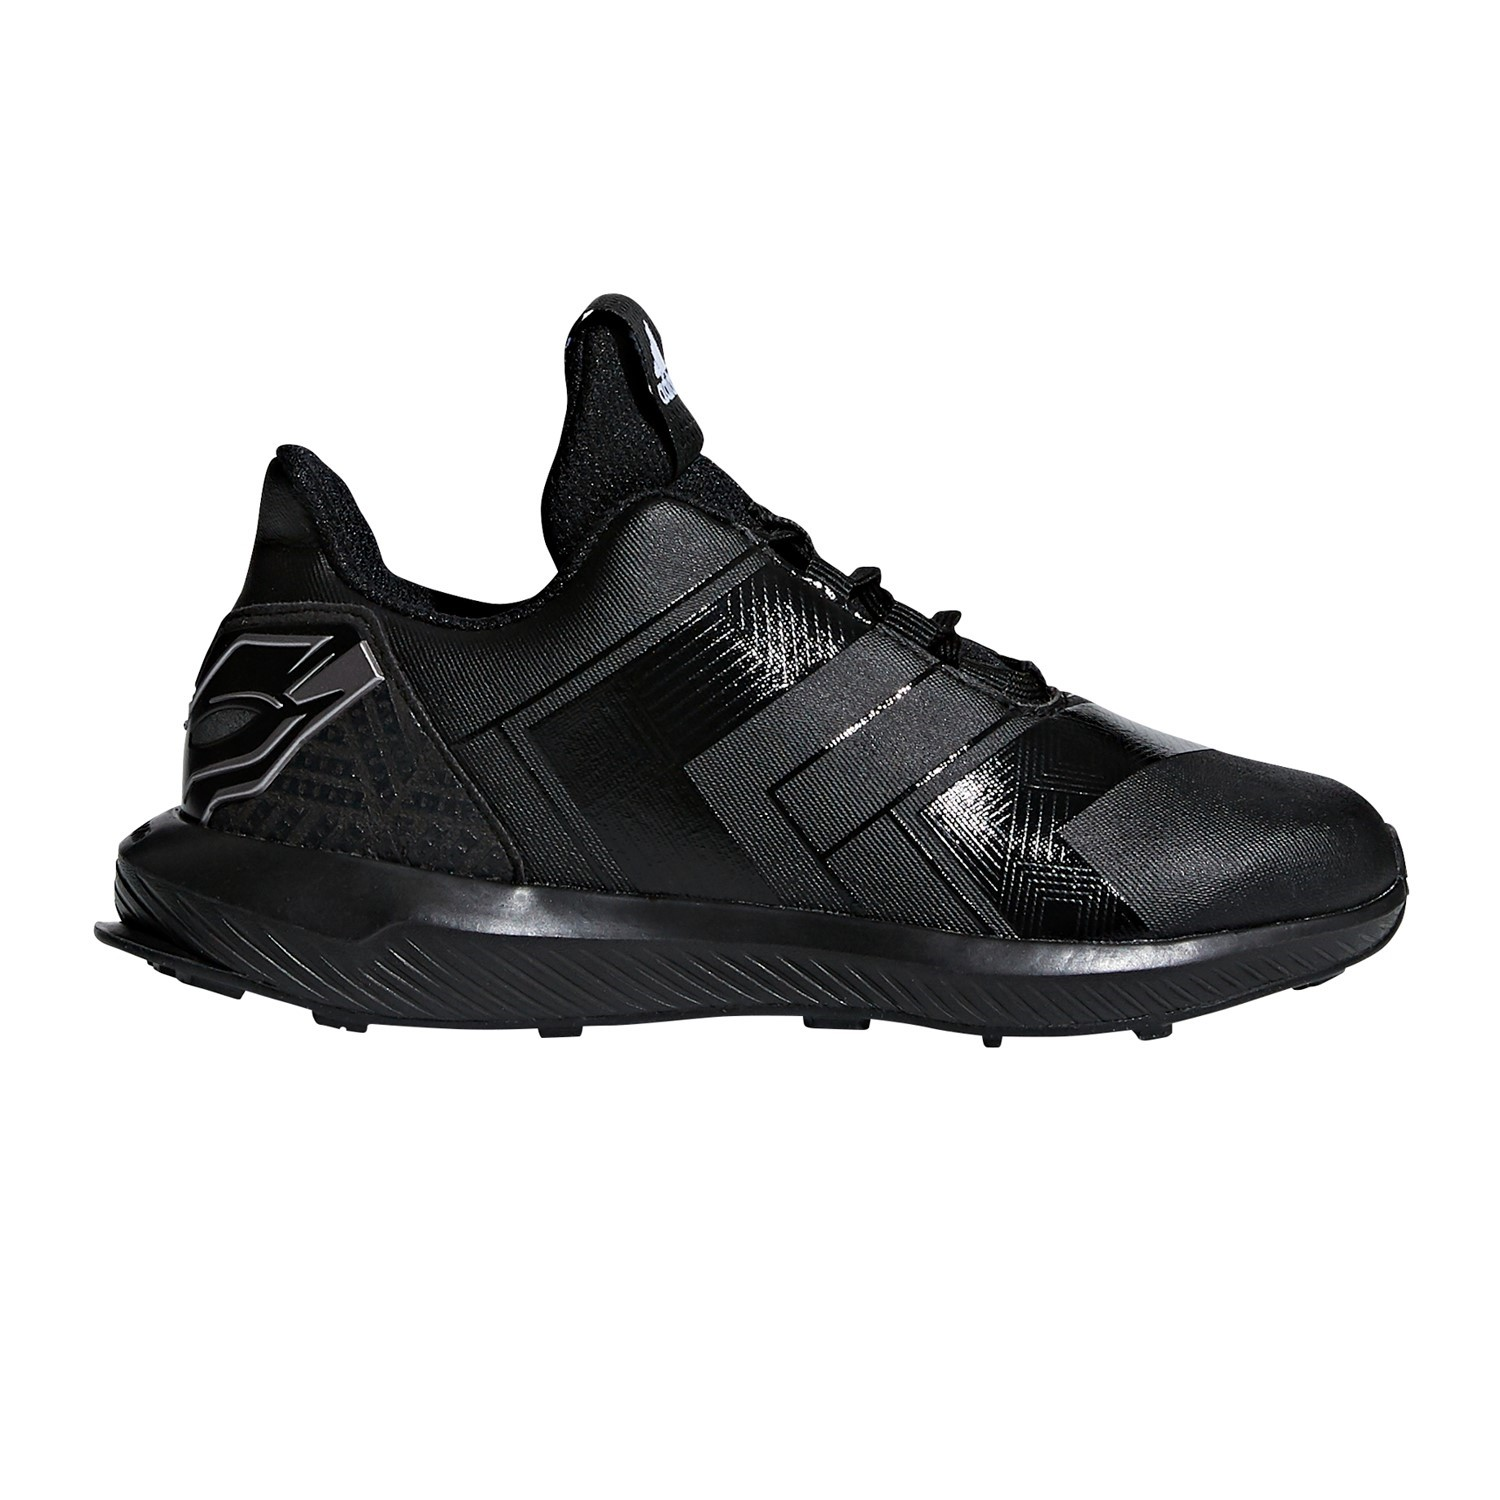 official photos f08f5 3e896 Adidas RapidaRun Avengers Black Panther - Kids Boys Running Shoes -  BlackSilver